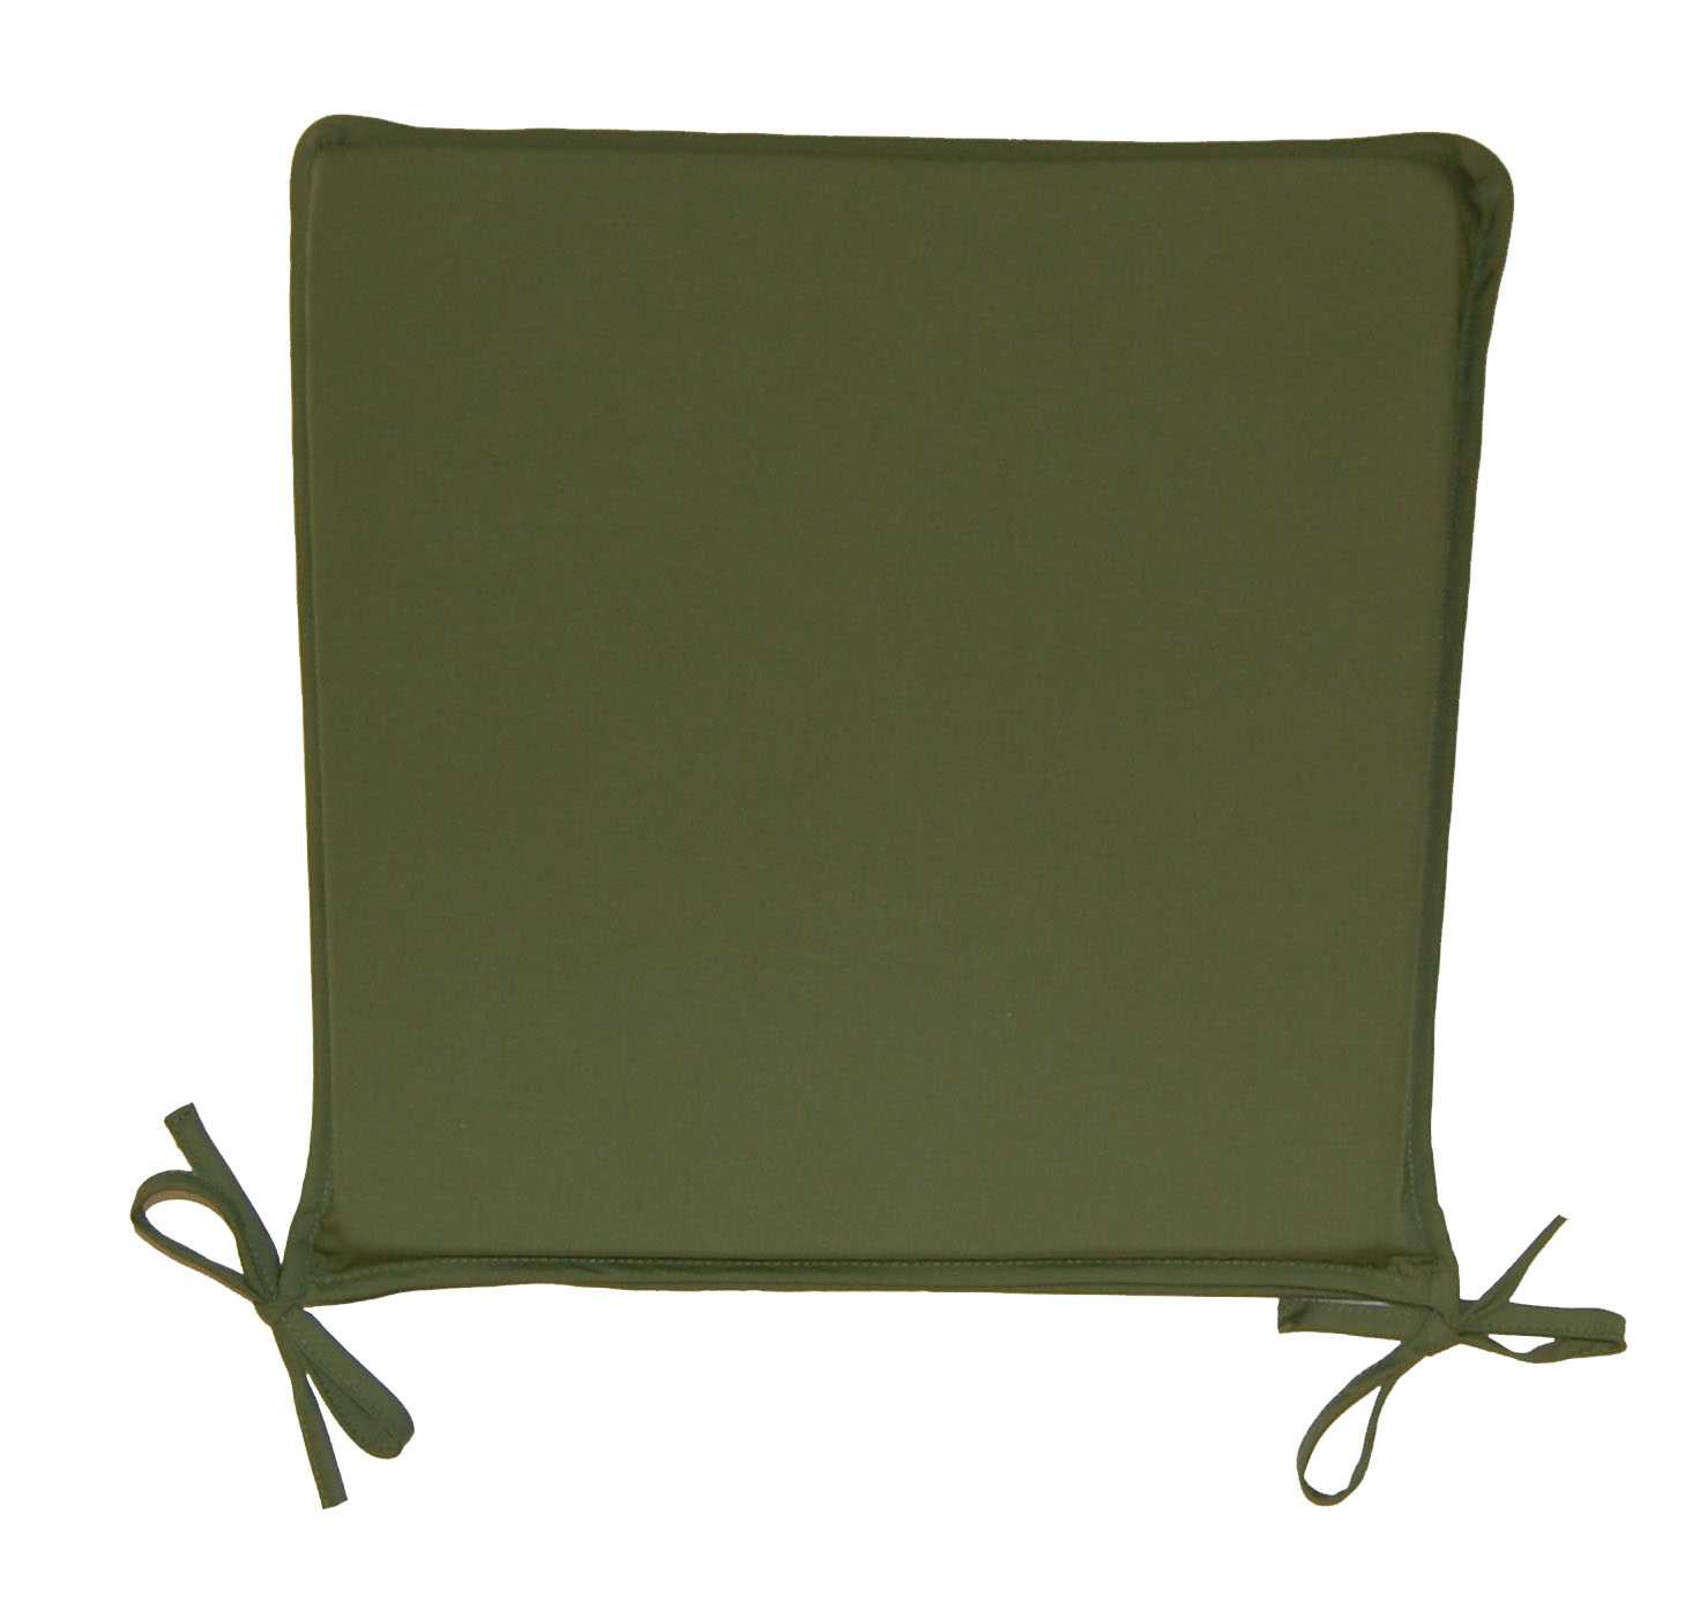 Plain Square Seat Pad Outdoor Garden Dining Kitchen Chair  : square seat pad green from www.ebay.com.au size 1700 x 1600 jpeg 172kB